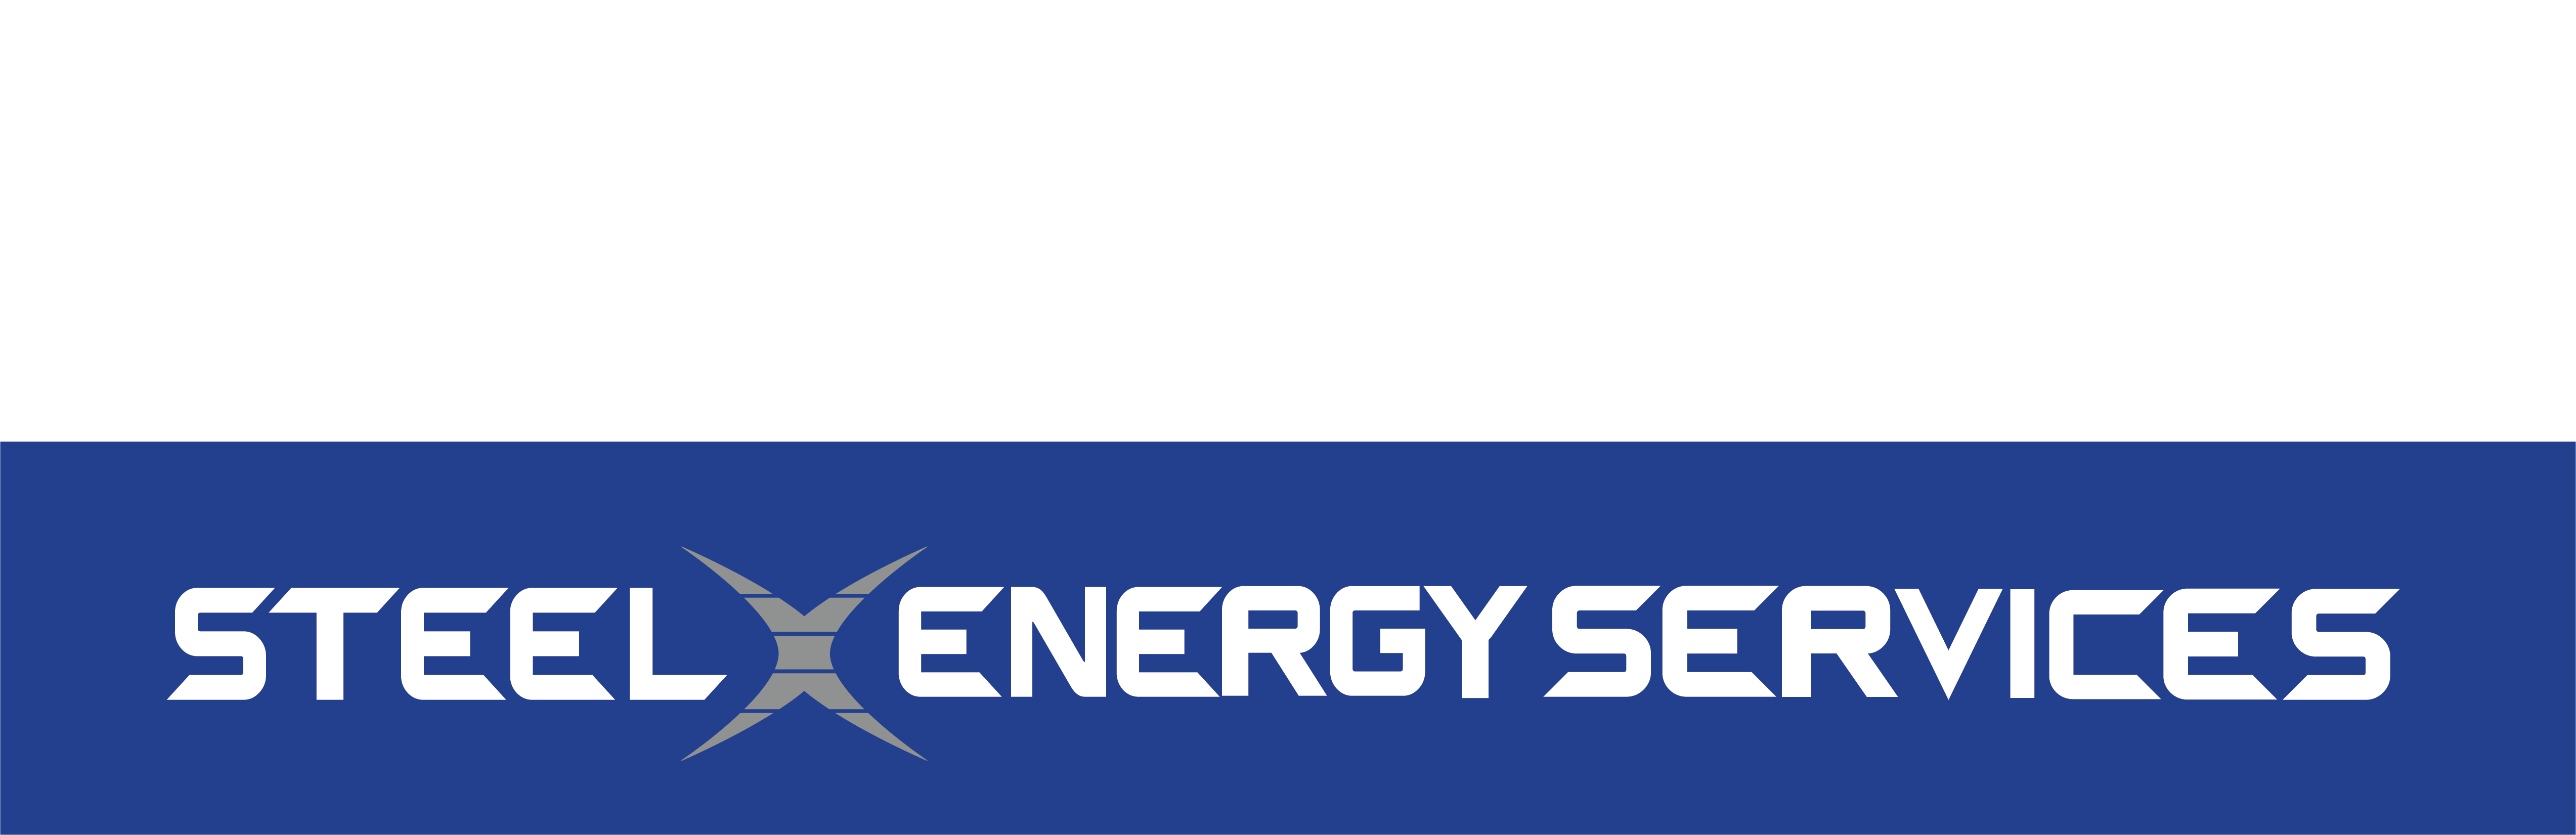 steel energy services